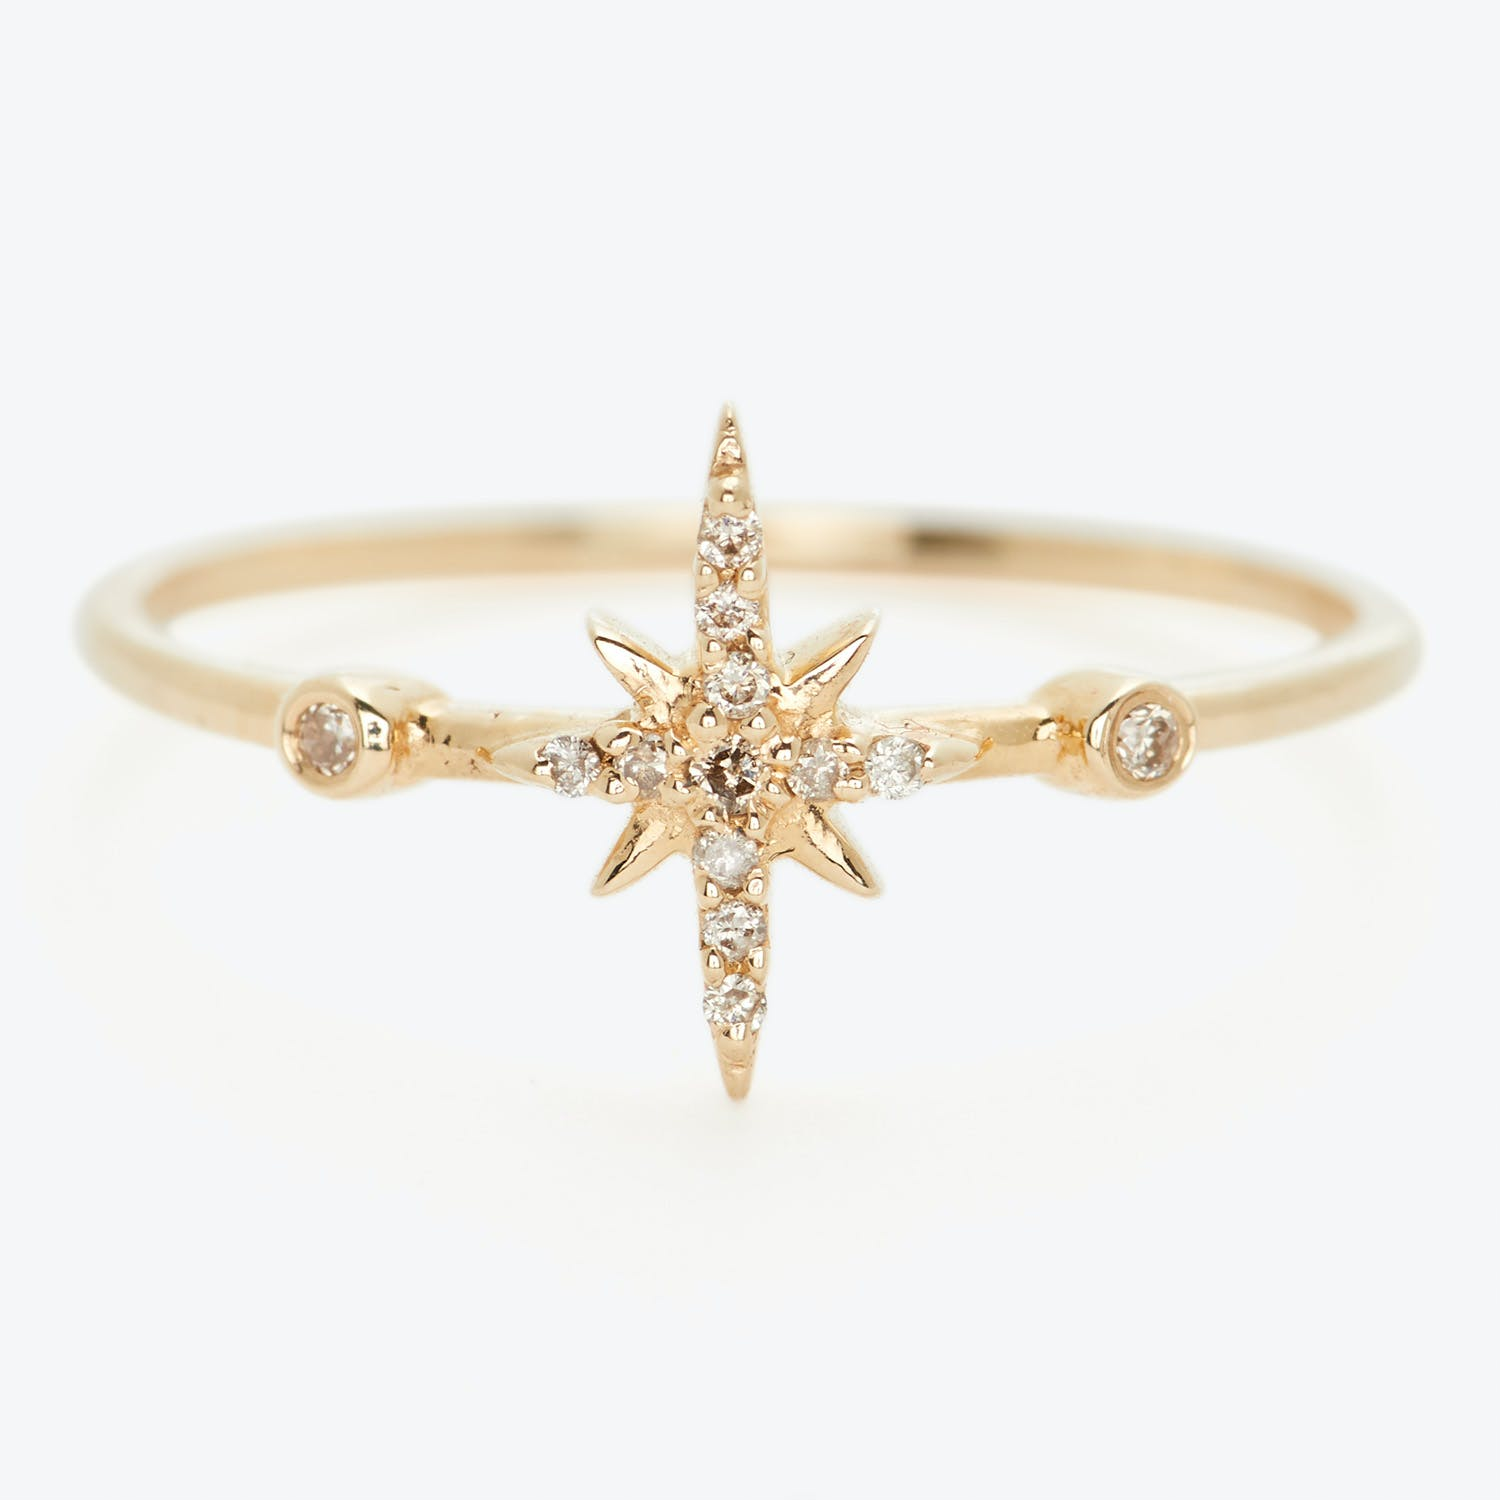 Celine D'Aoust Diamond North Star Ring